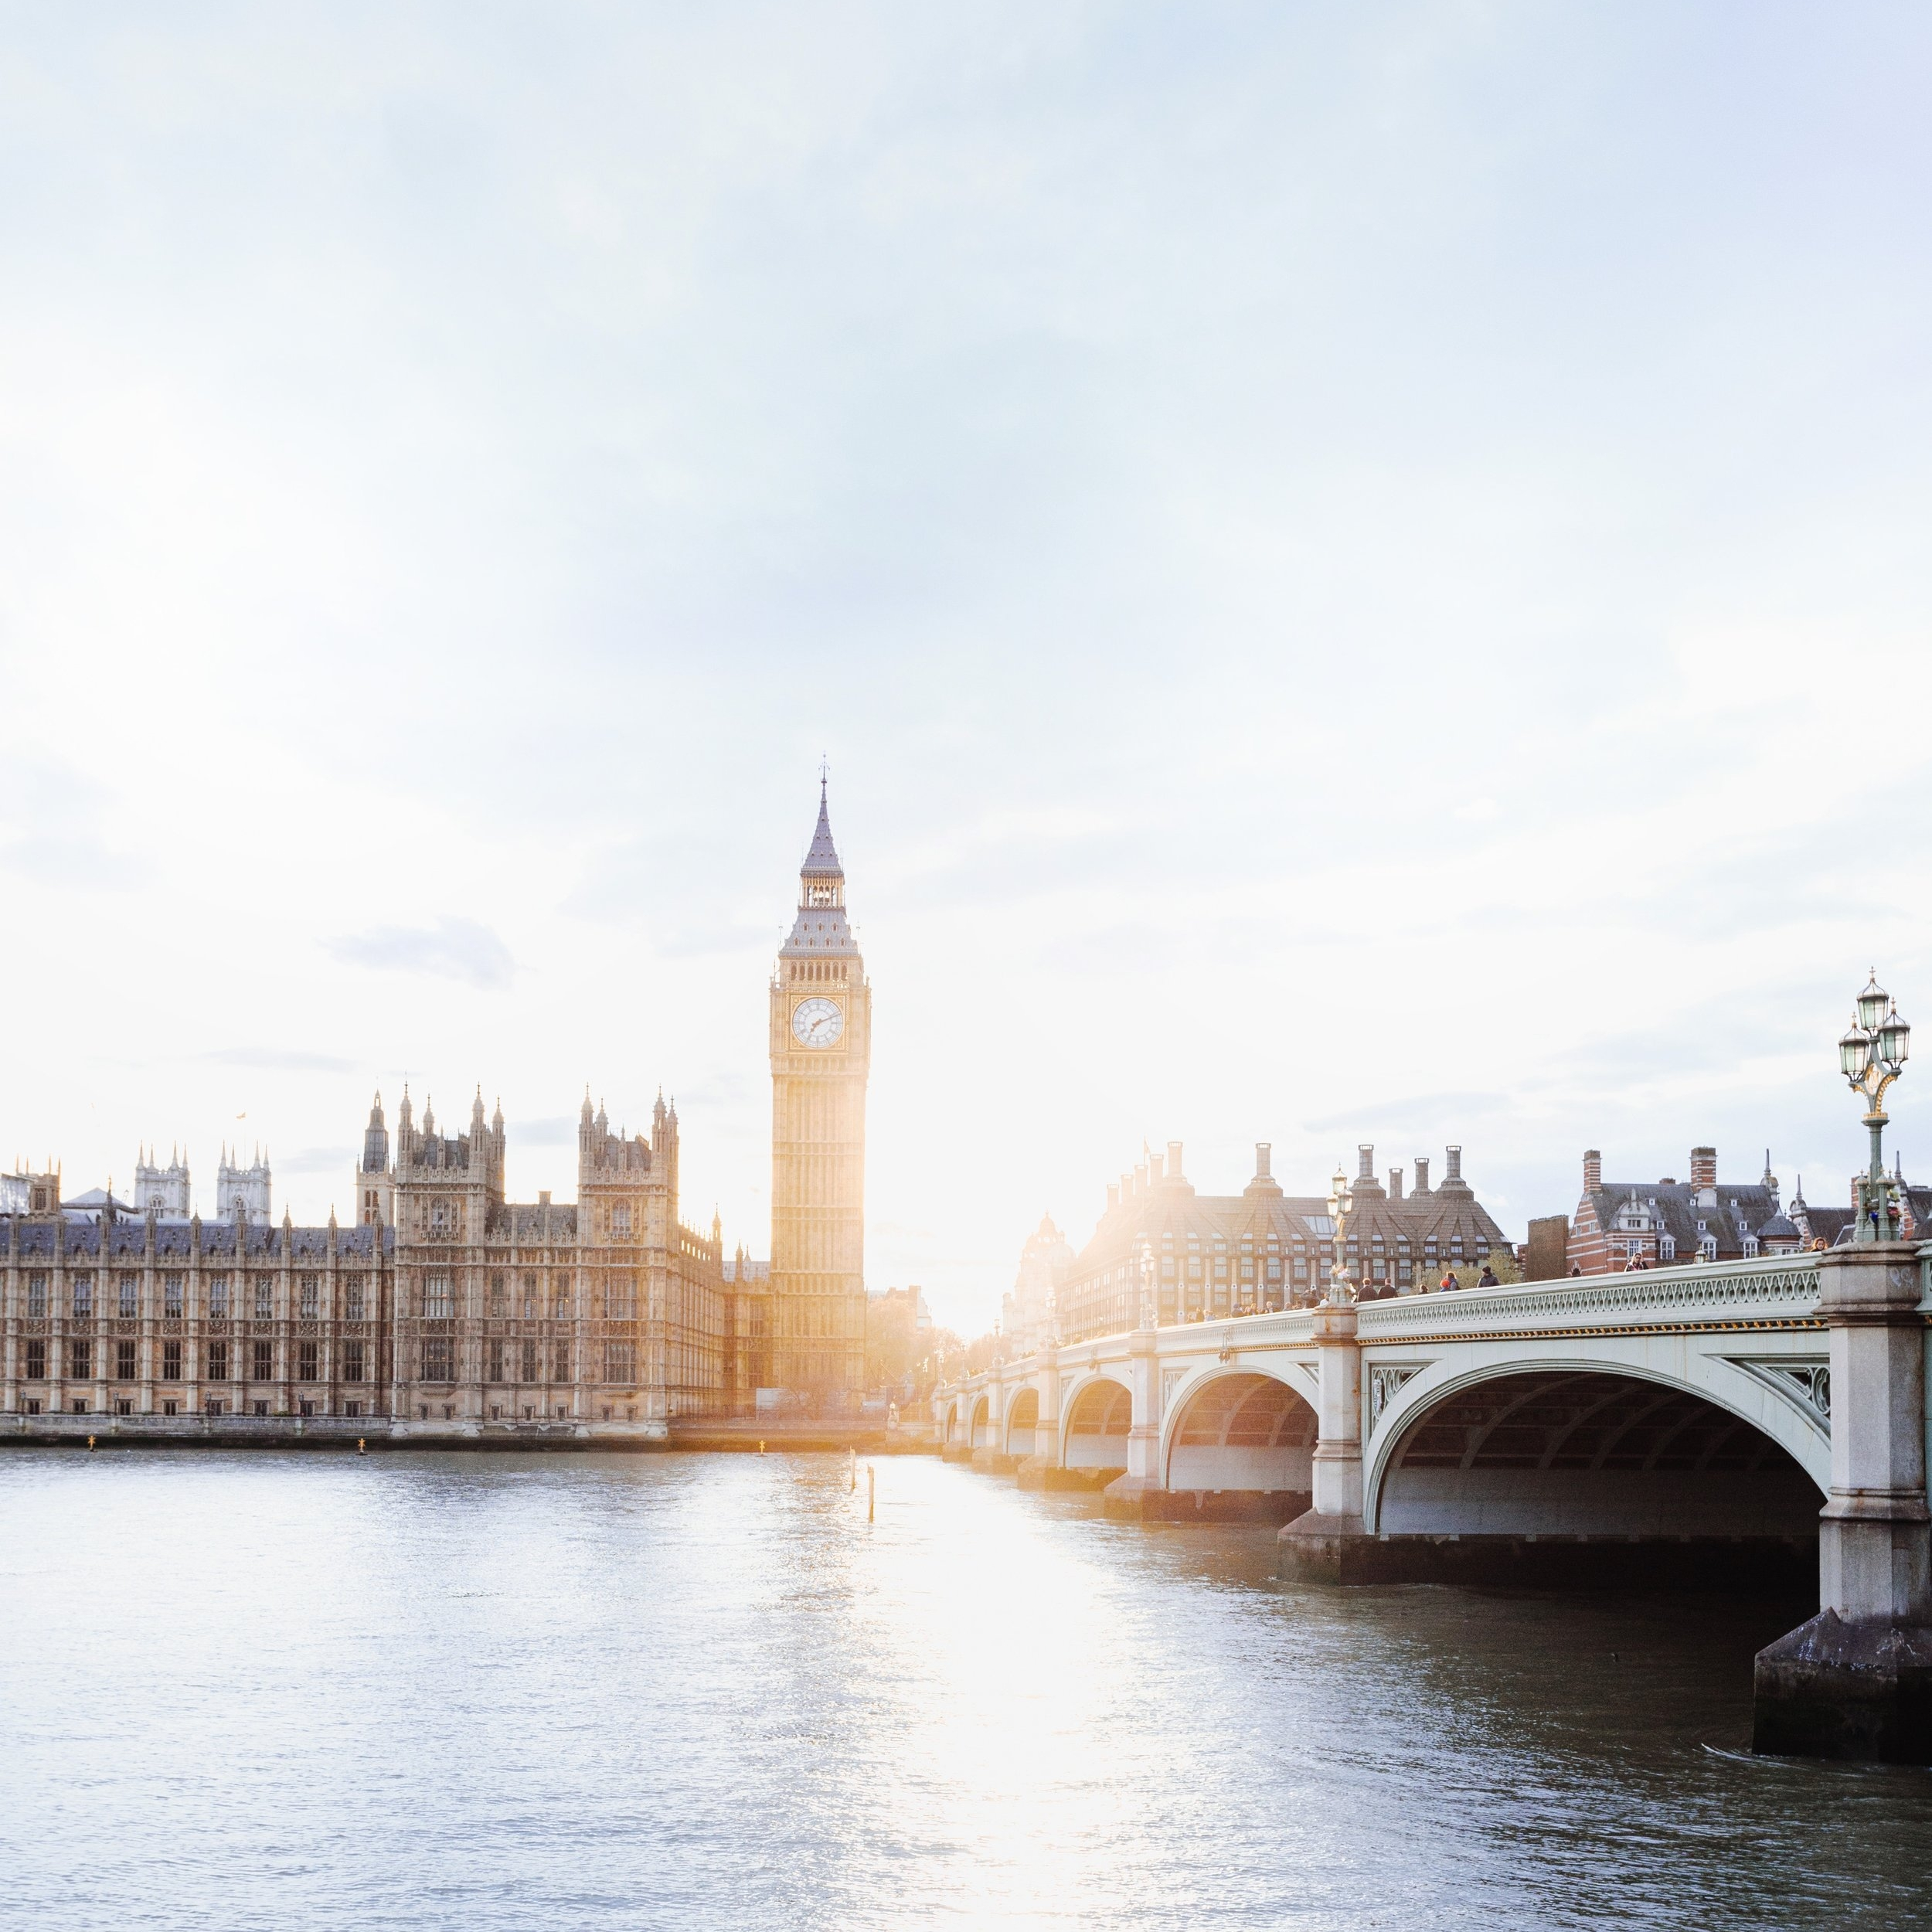 International Leadership   The UK has become a leader in the fight against climate change, building momentum for the Paris Agreement and with many countries—including Denmark, Finland, Mexico, Norway, and France—modelling their climate legislation after the Climate Change Act.